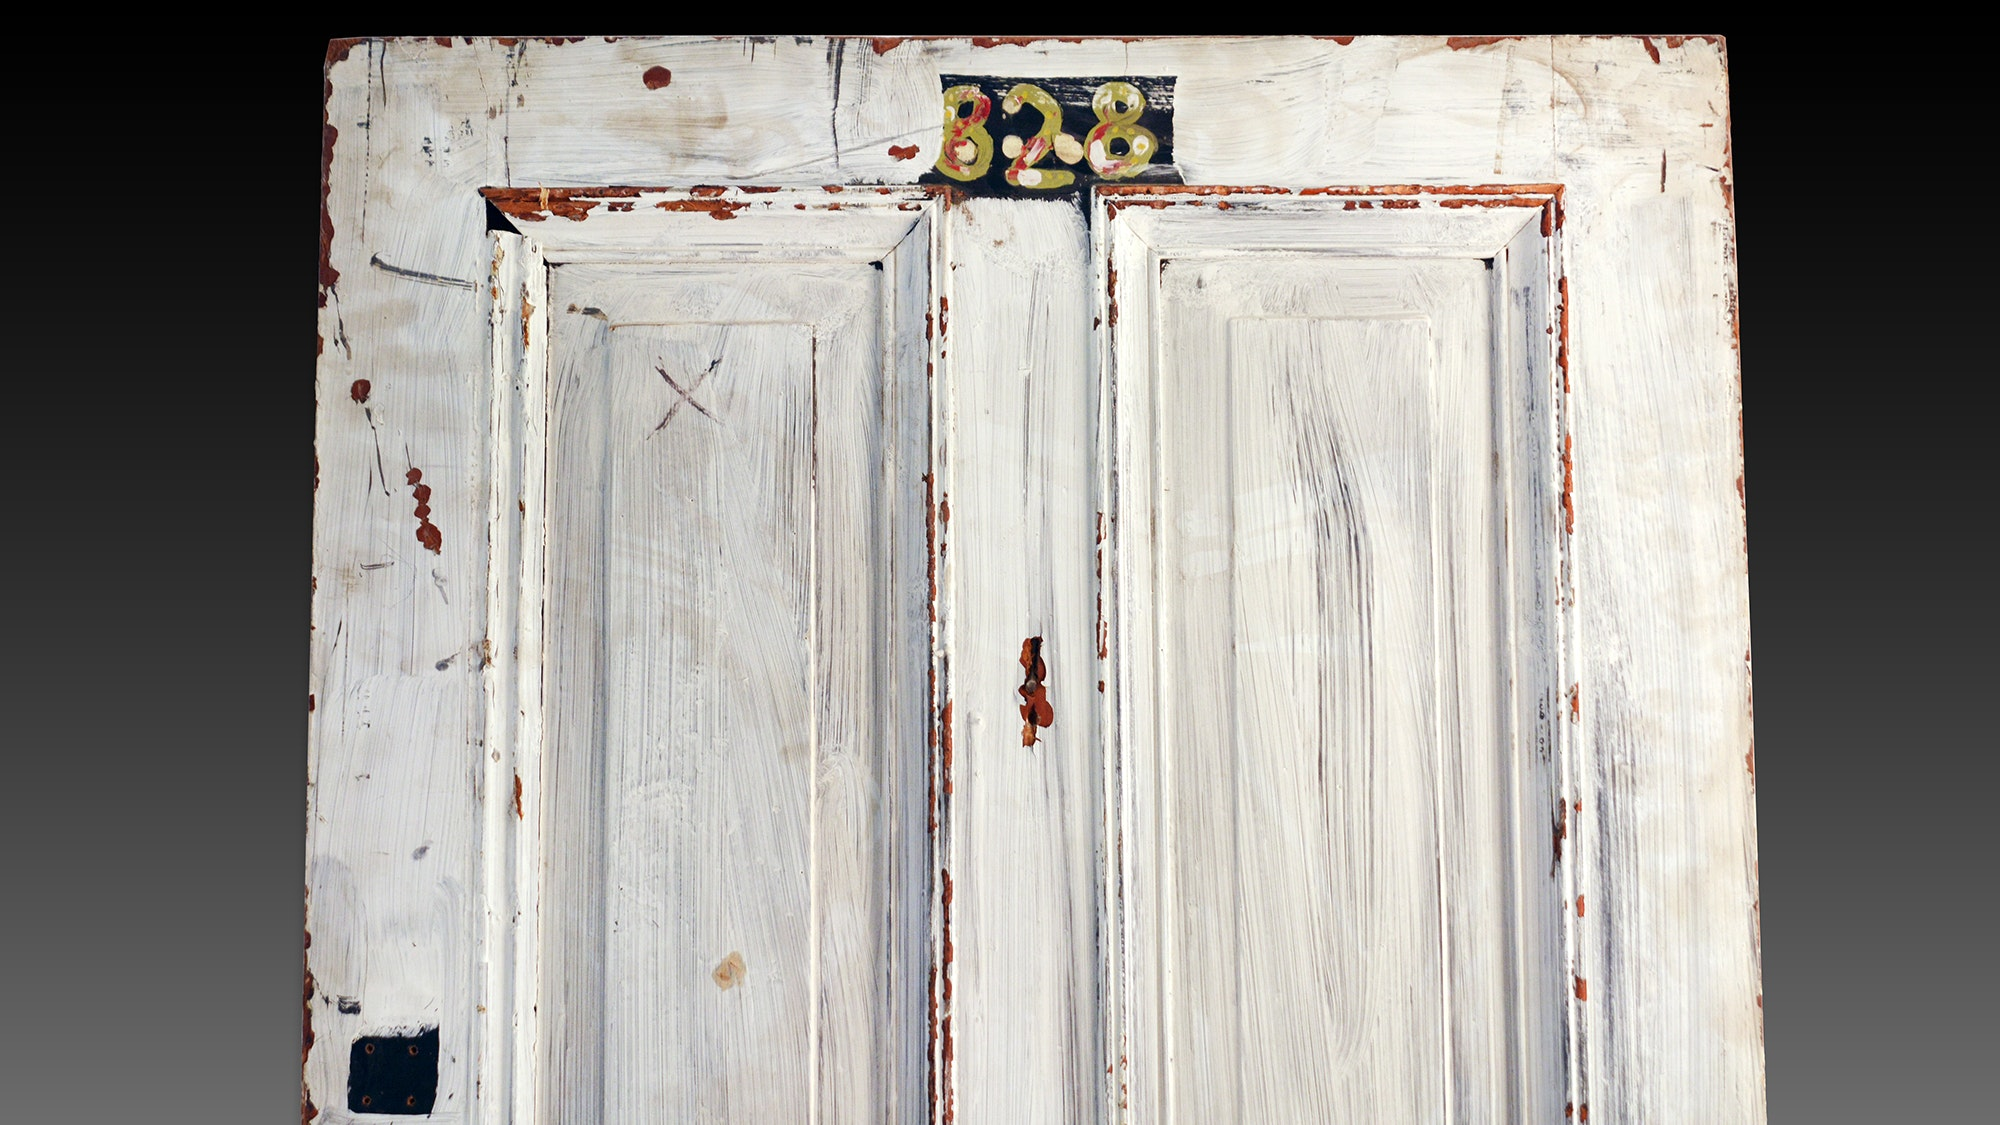 Original 3 4.jpg?1523648766?ixlibu003drails 0.3 & In New York City 52 Old Doors from the Chelsea Hotelu2014and Their ...